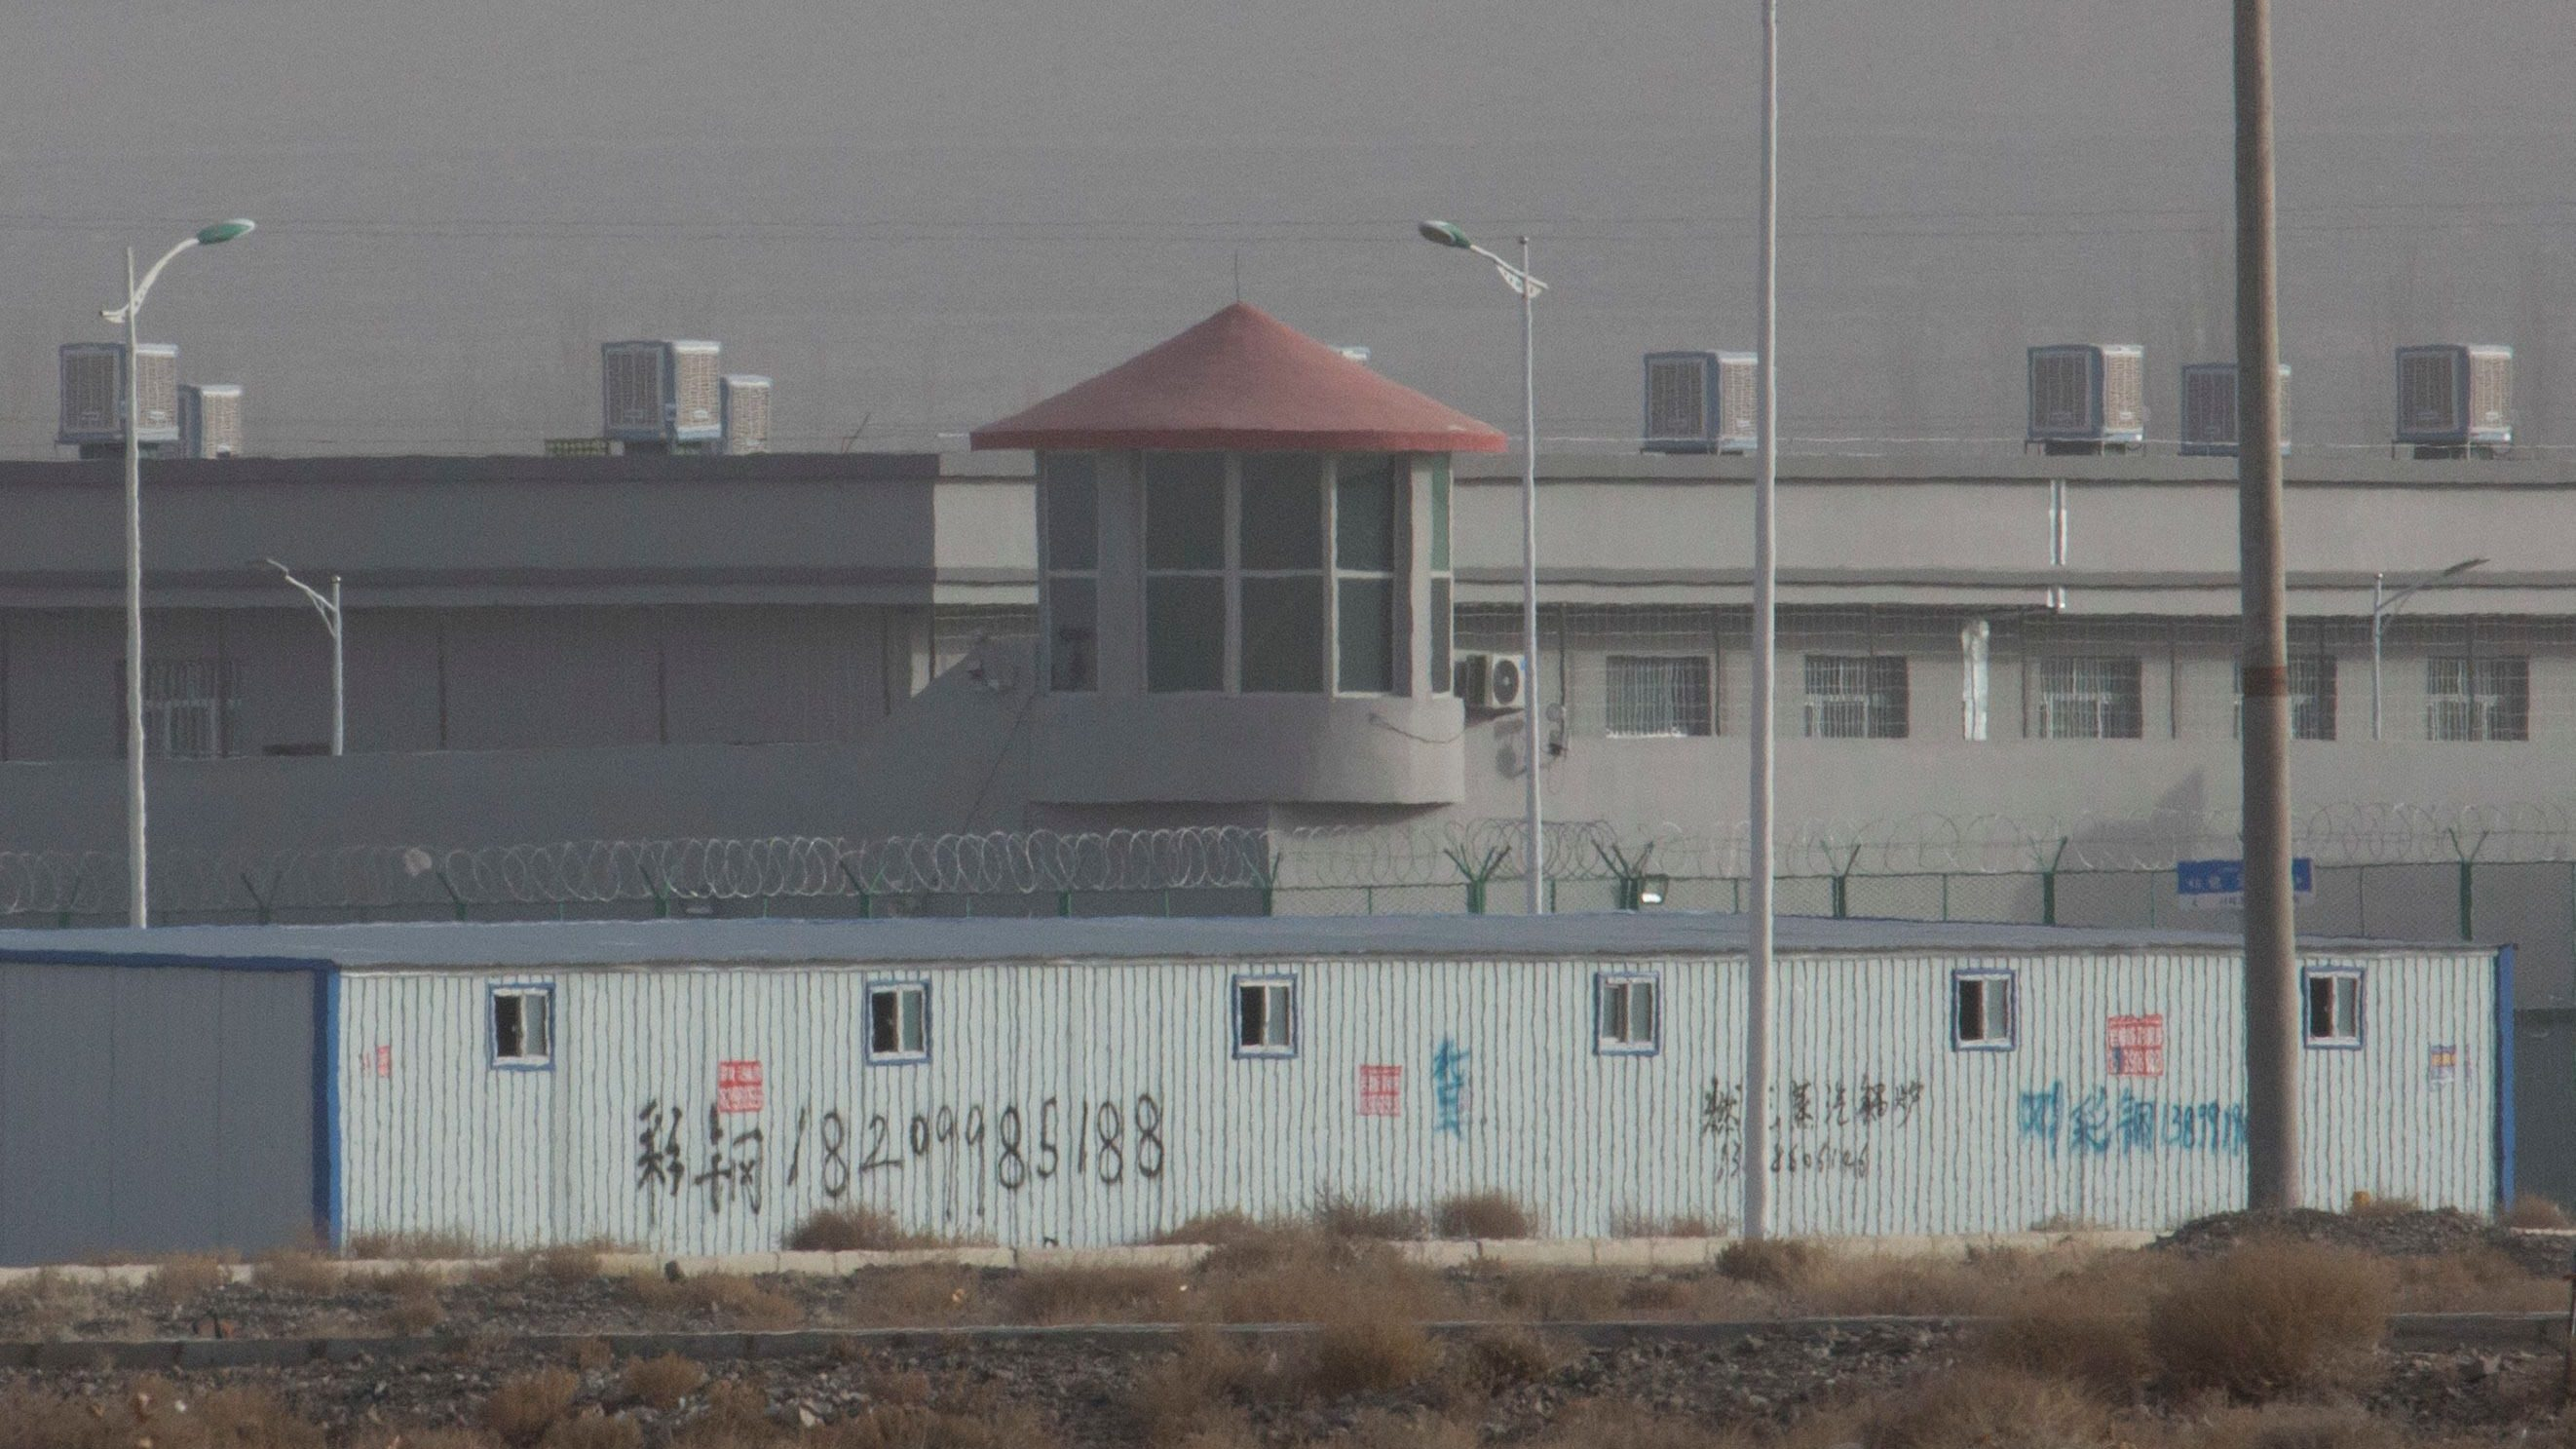 In this Monday, Dec. 3, 2018, photo, a guard tower and barbed wire fences are seen around a facility in the Kunshan Industrial Park in Artux in western China's Xinjiang region. This is one of a growing number of internment camps in the Xinjiang region, where by some estimates 1 million Muslims are detained, forced to give up their language and their religion and subject to political indoctrination. Now, the Chinese government is also forcing some detainees to work in manufacturing and food industries. Some of them are within the internment camps; others are privately owned, state-subsidized factories where detainees are sent once they are released. (AP Photo/Ng Han Guan)